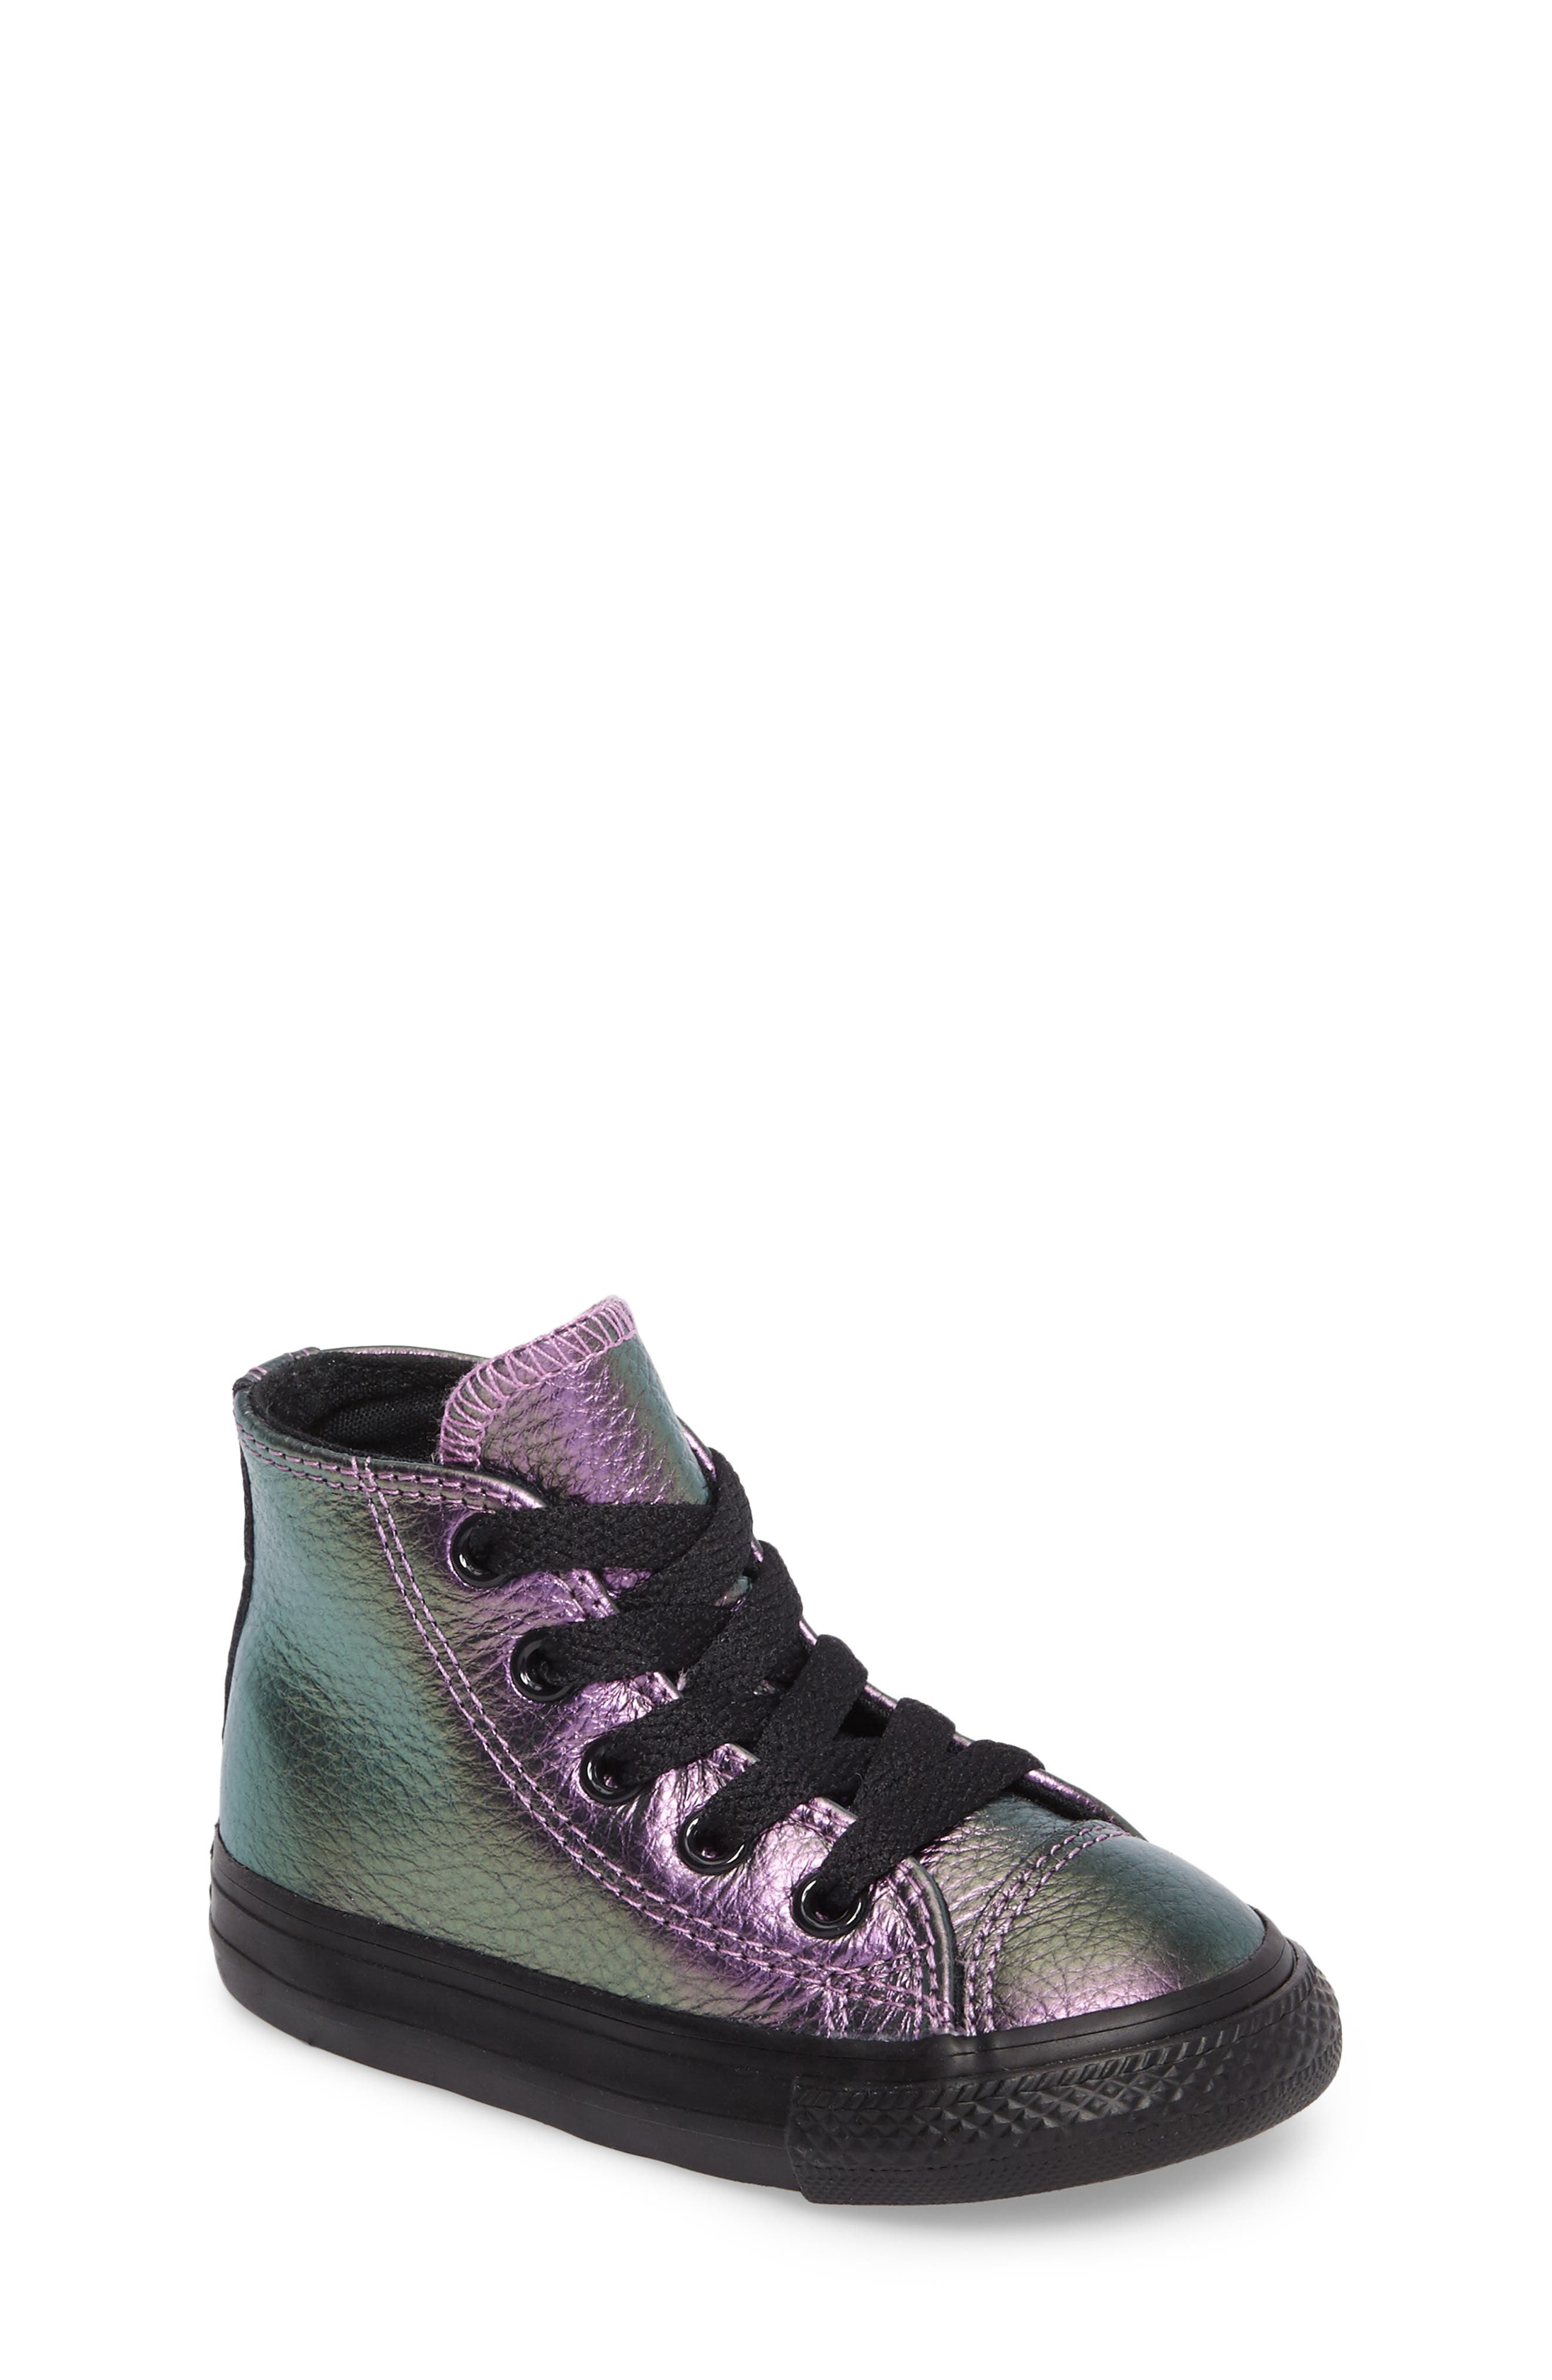 Alternate Image 1 Selected - Converse Chuck Taylor® All Star® Iridescent Leather High Top Sneaker (Baby, Walker, Toddler & Little Kid)